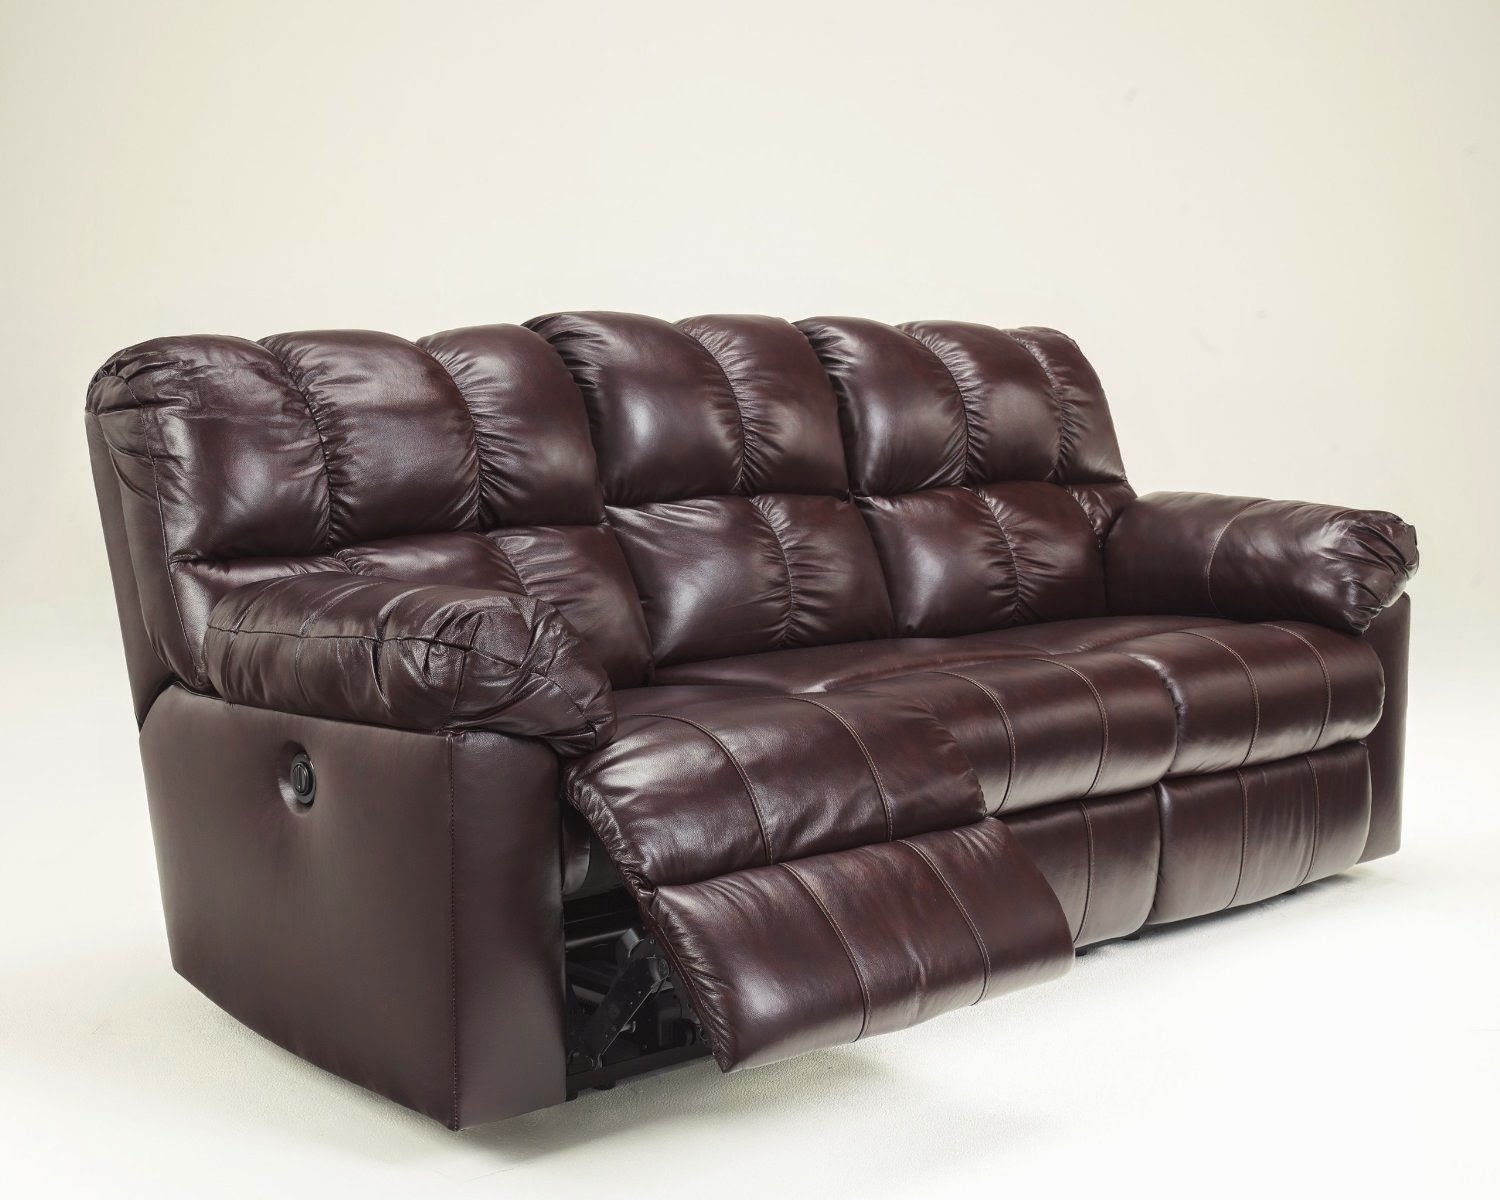 Reclining Sofas For Sale Cheap: Red Leather Reclining Sofa